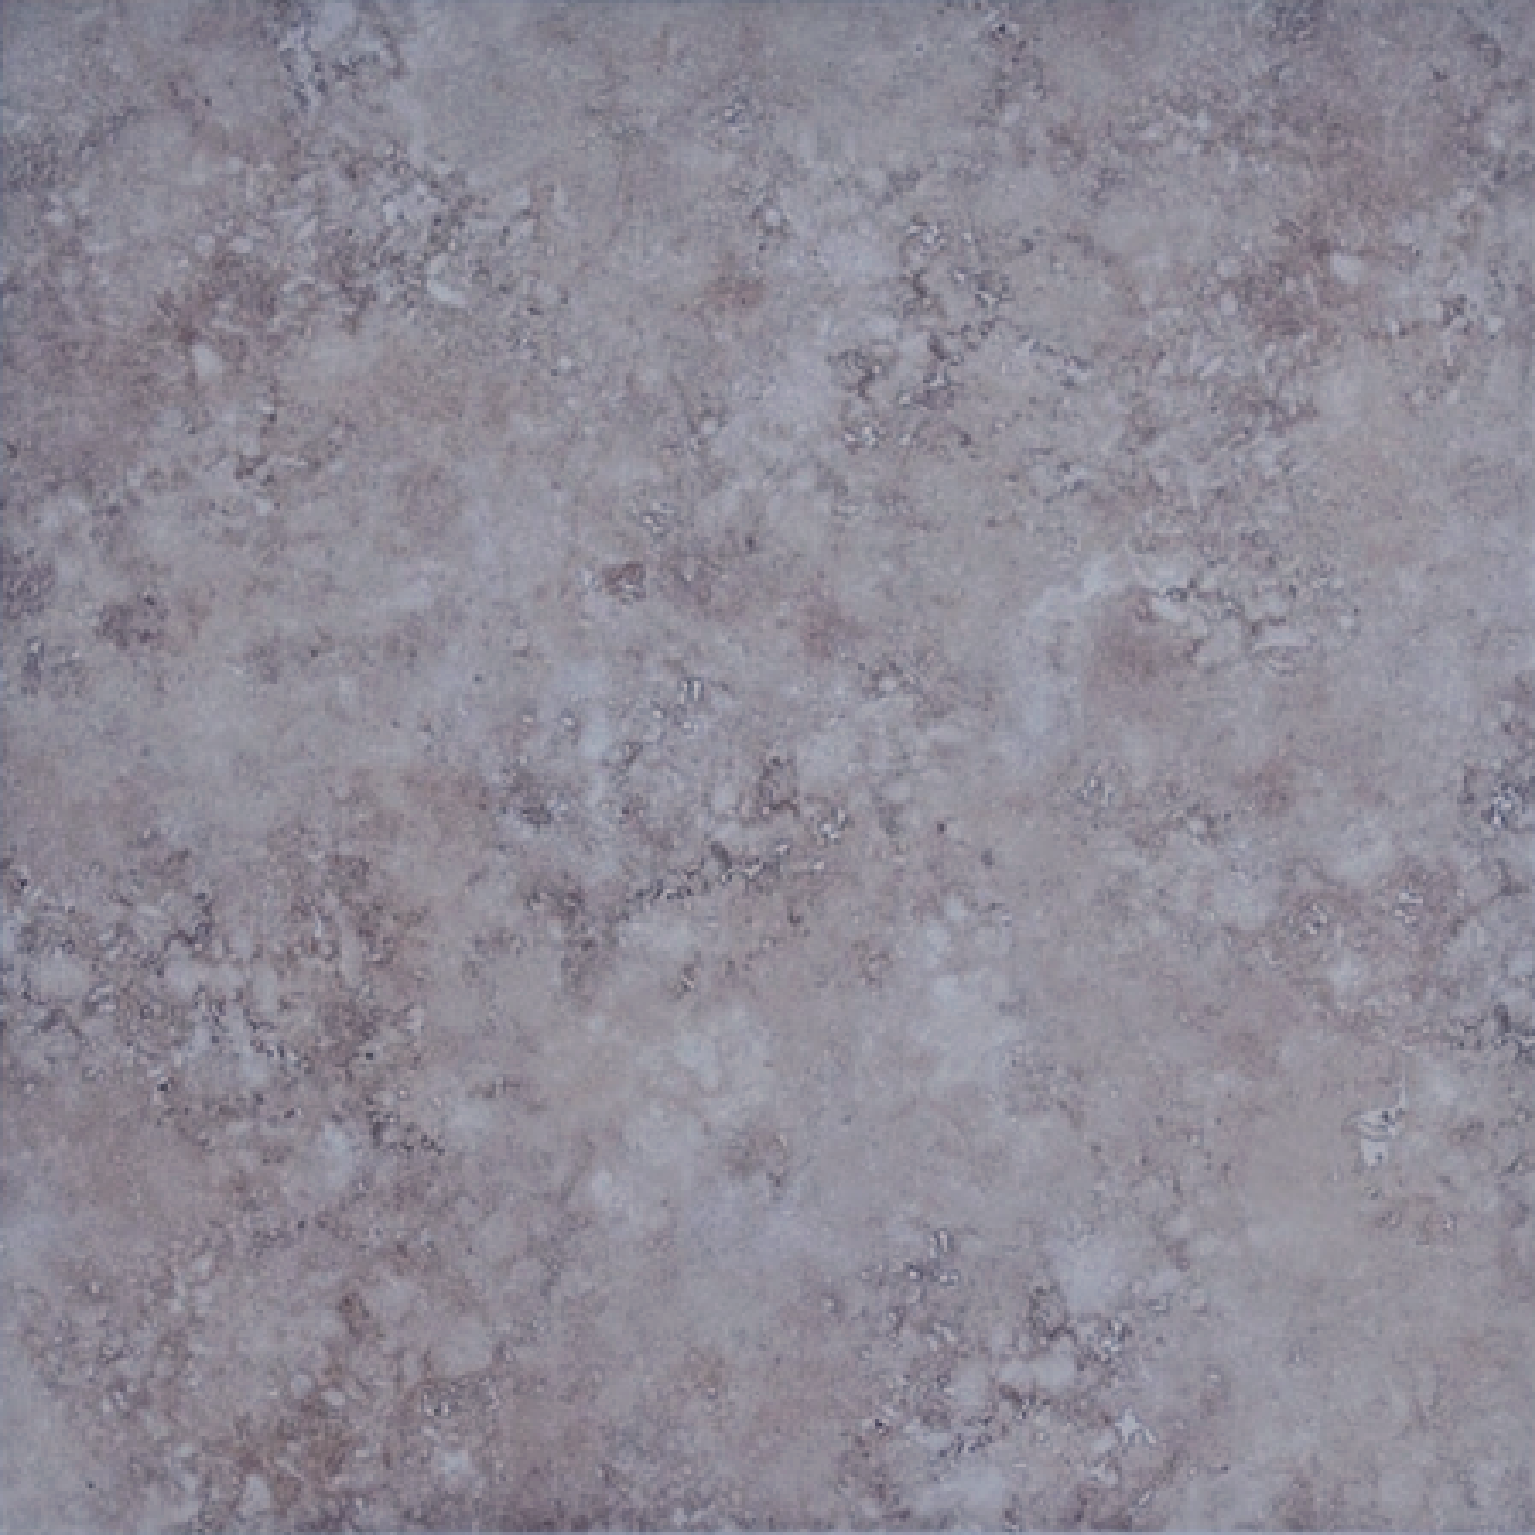 Floor tile porcelain rustic rotto series ra105 grey 20 x 20 floor tile porcelain rustic rotto series ra105 grey 20 x dailygadgetfo Choice Image